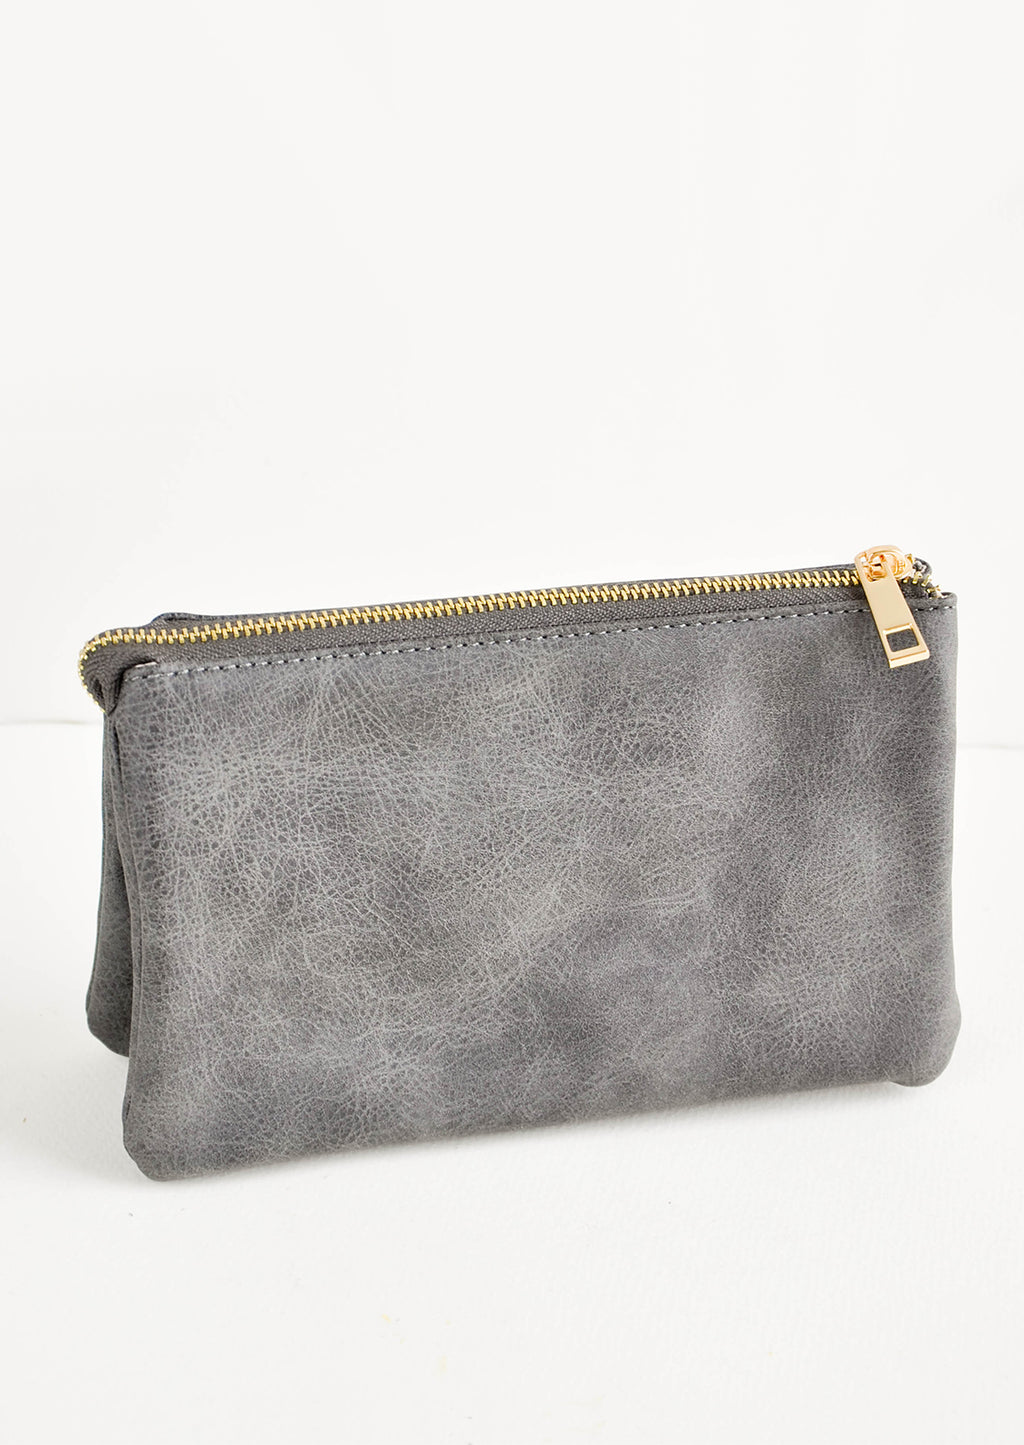 Charcoal Crackle: Suki Crossbody Clutch Wallet